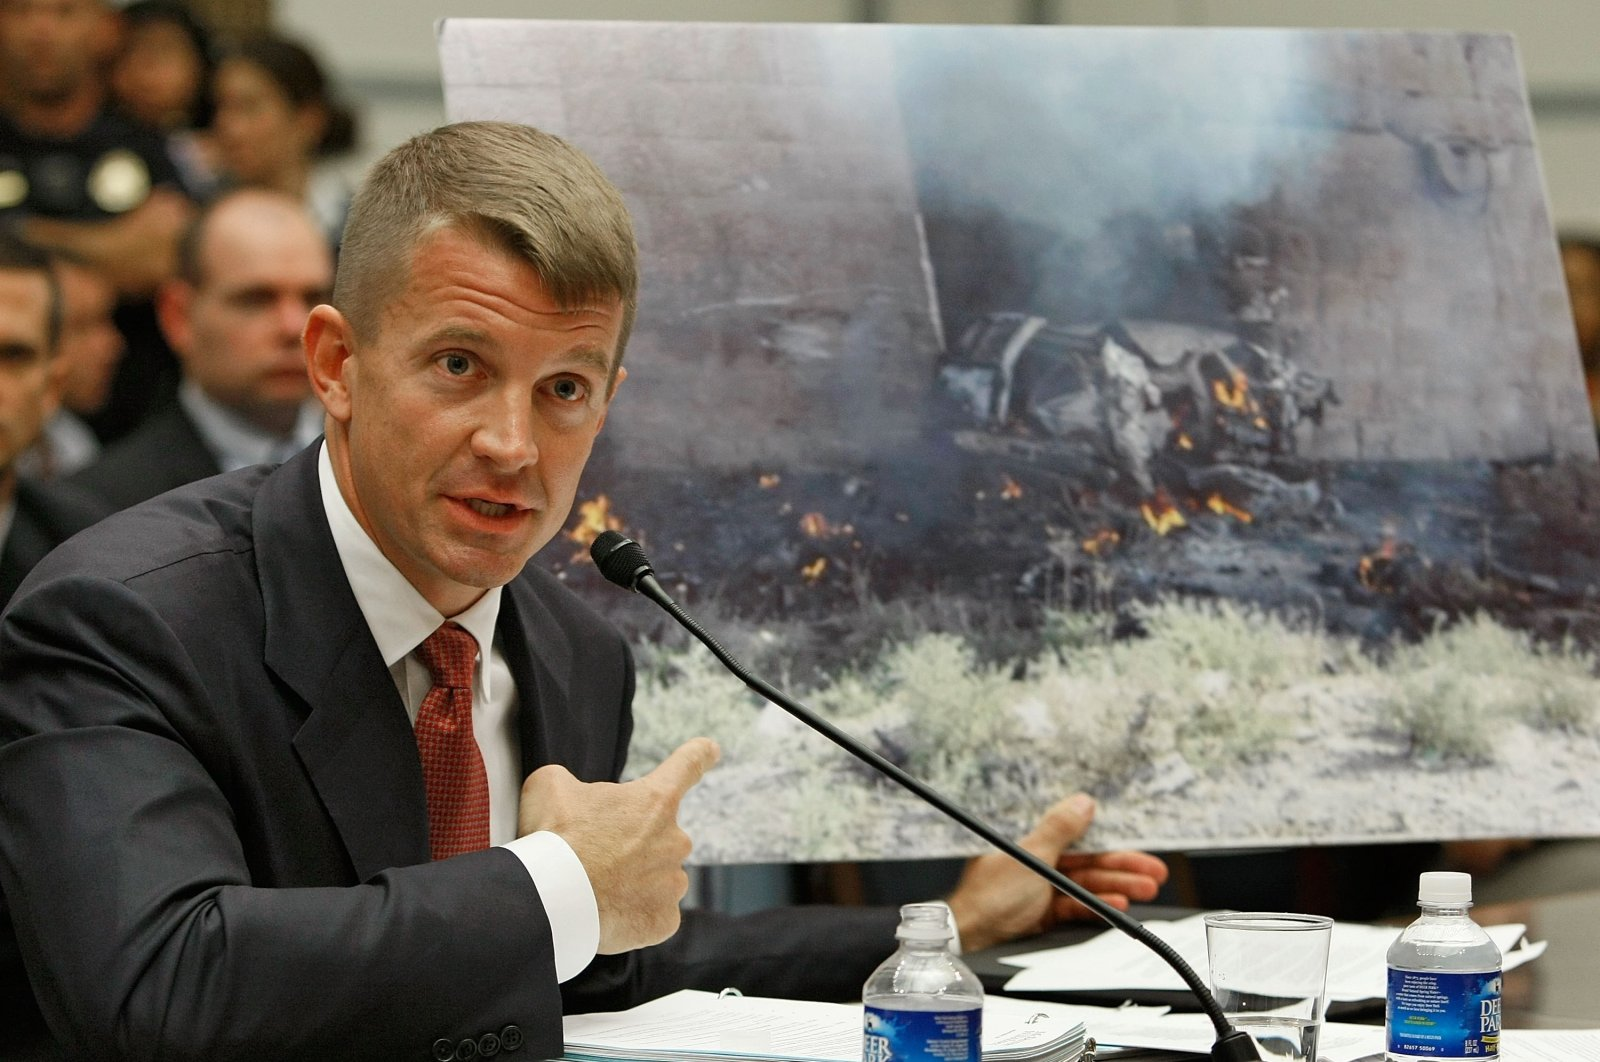 Erik Prince, chairperson of the Prince Group, LLC and Blackwater, holds up a picture showing the affect of a car bomb while testifying during a House Oversight and Government Reform Committee hearing on Capitol Hill, Oct. 2, 2007 in Washington D.C., U.S. (Getty Images)